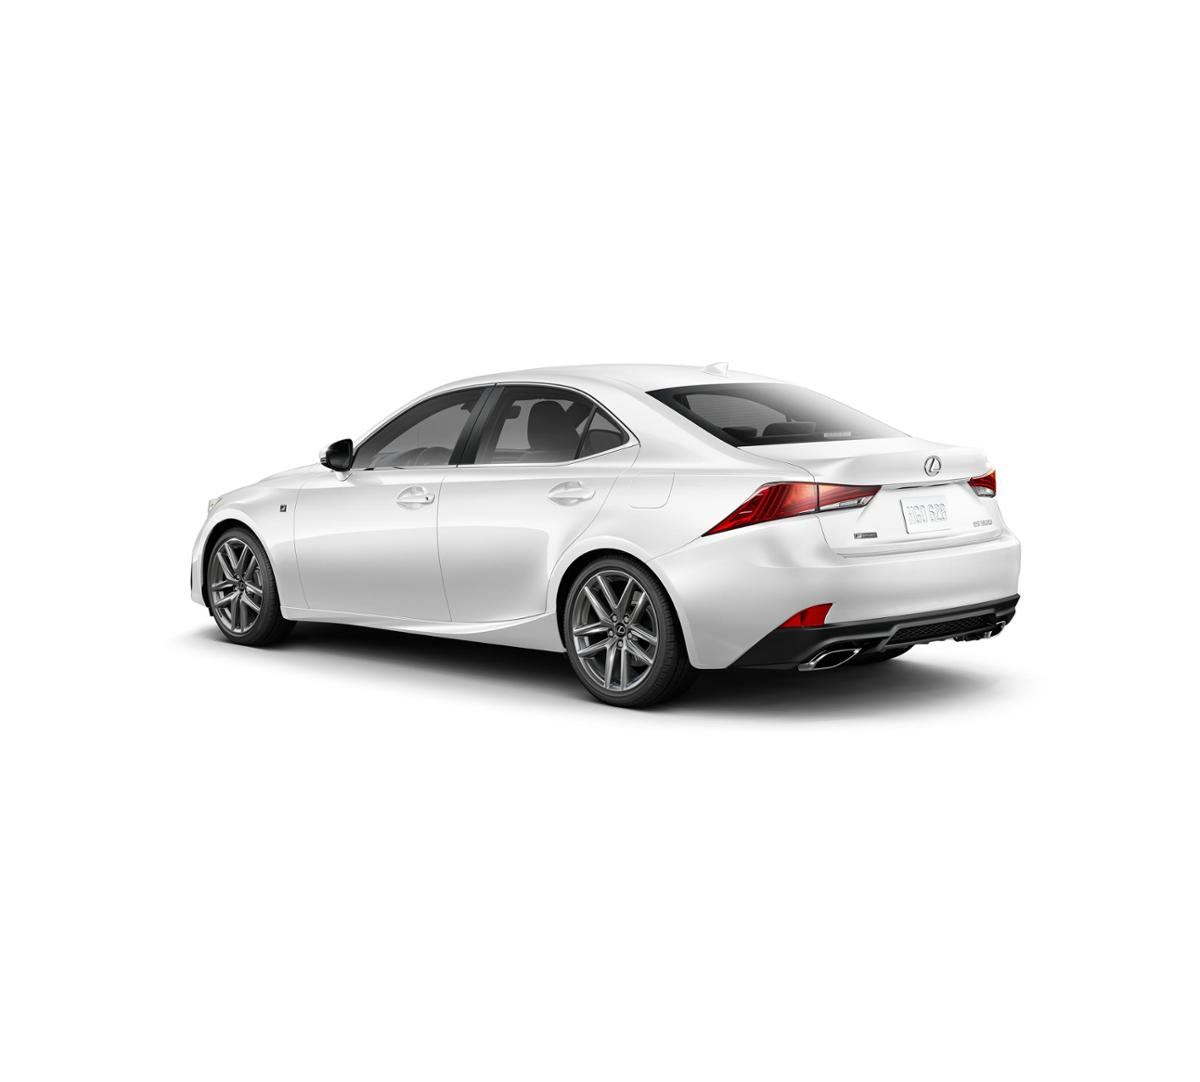 Used Lexus Is350: Used 2017 Ultra White Lexus IS 350 F Sport AWD For Sale In